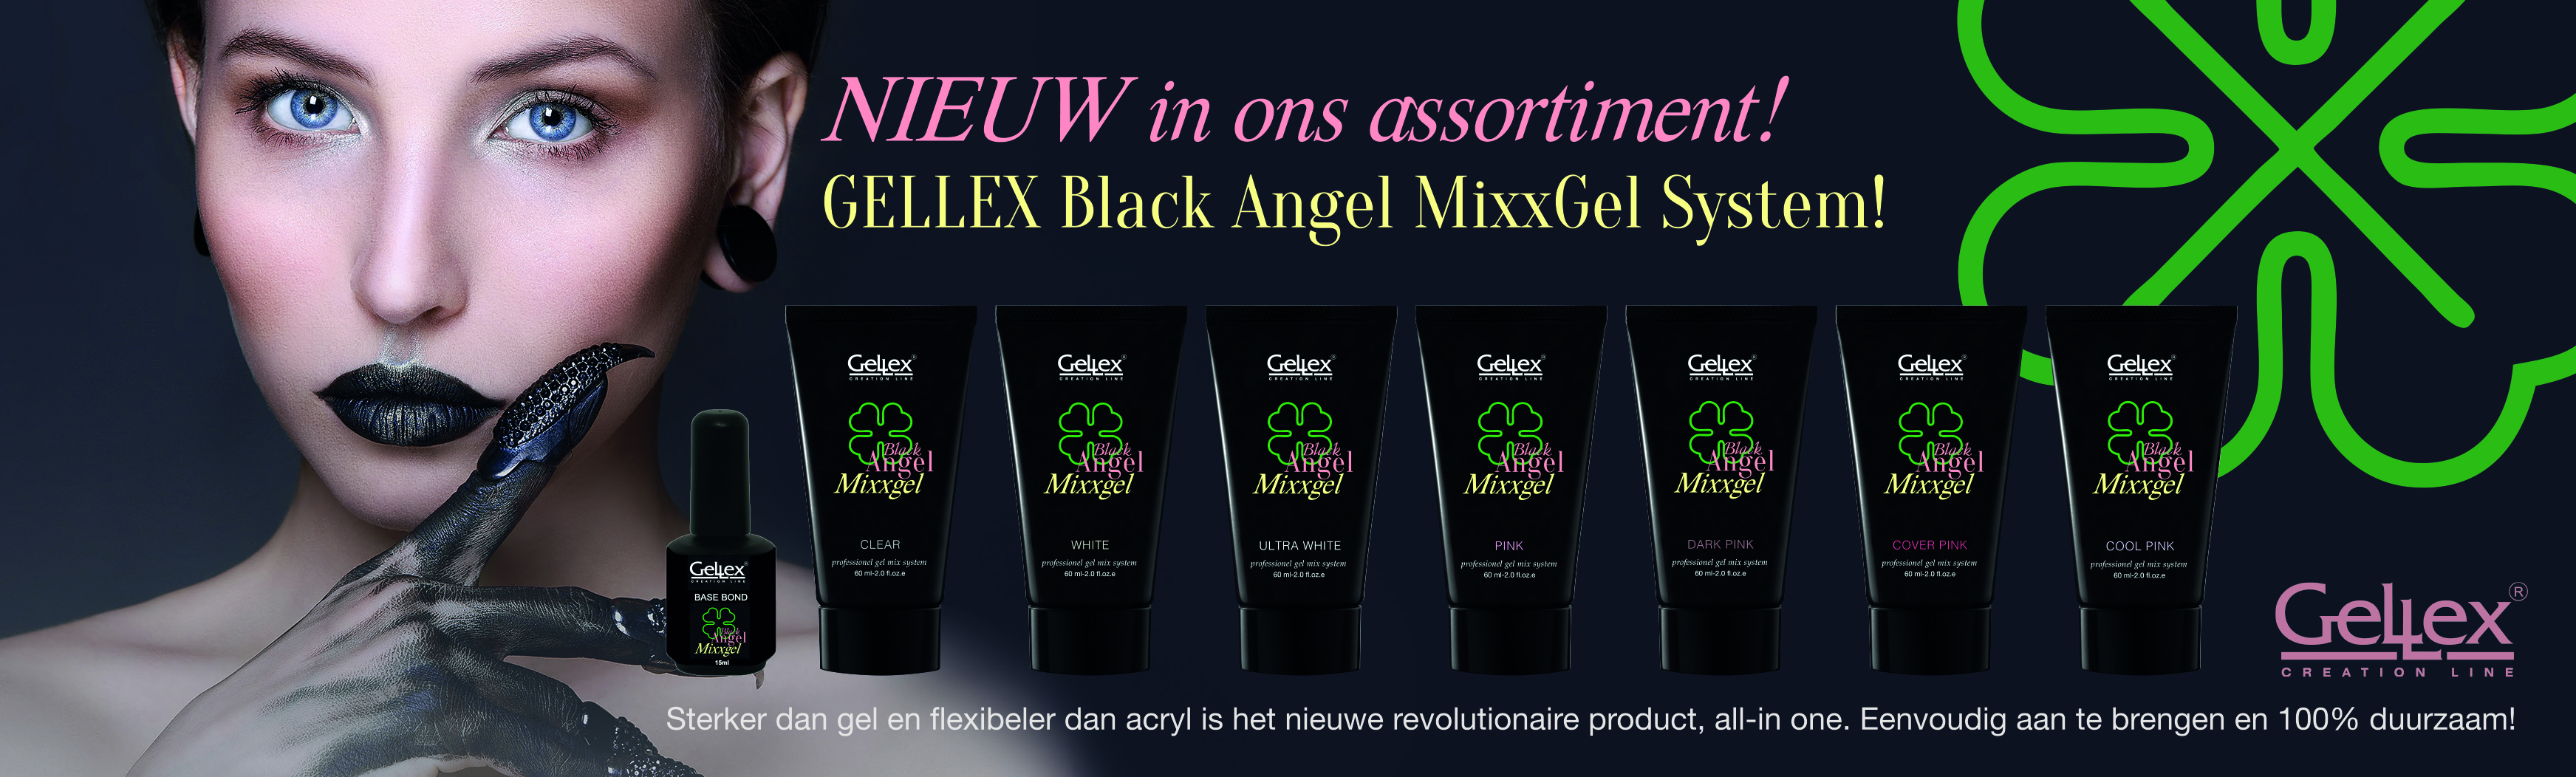 Black_Angel_MixxGel